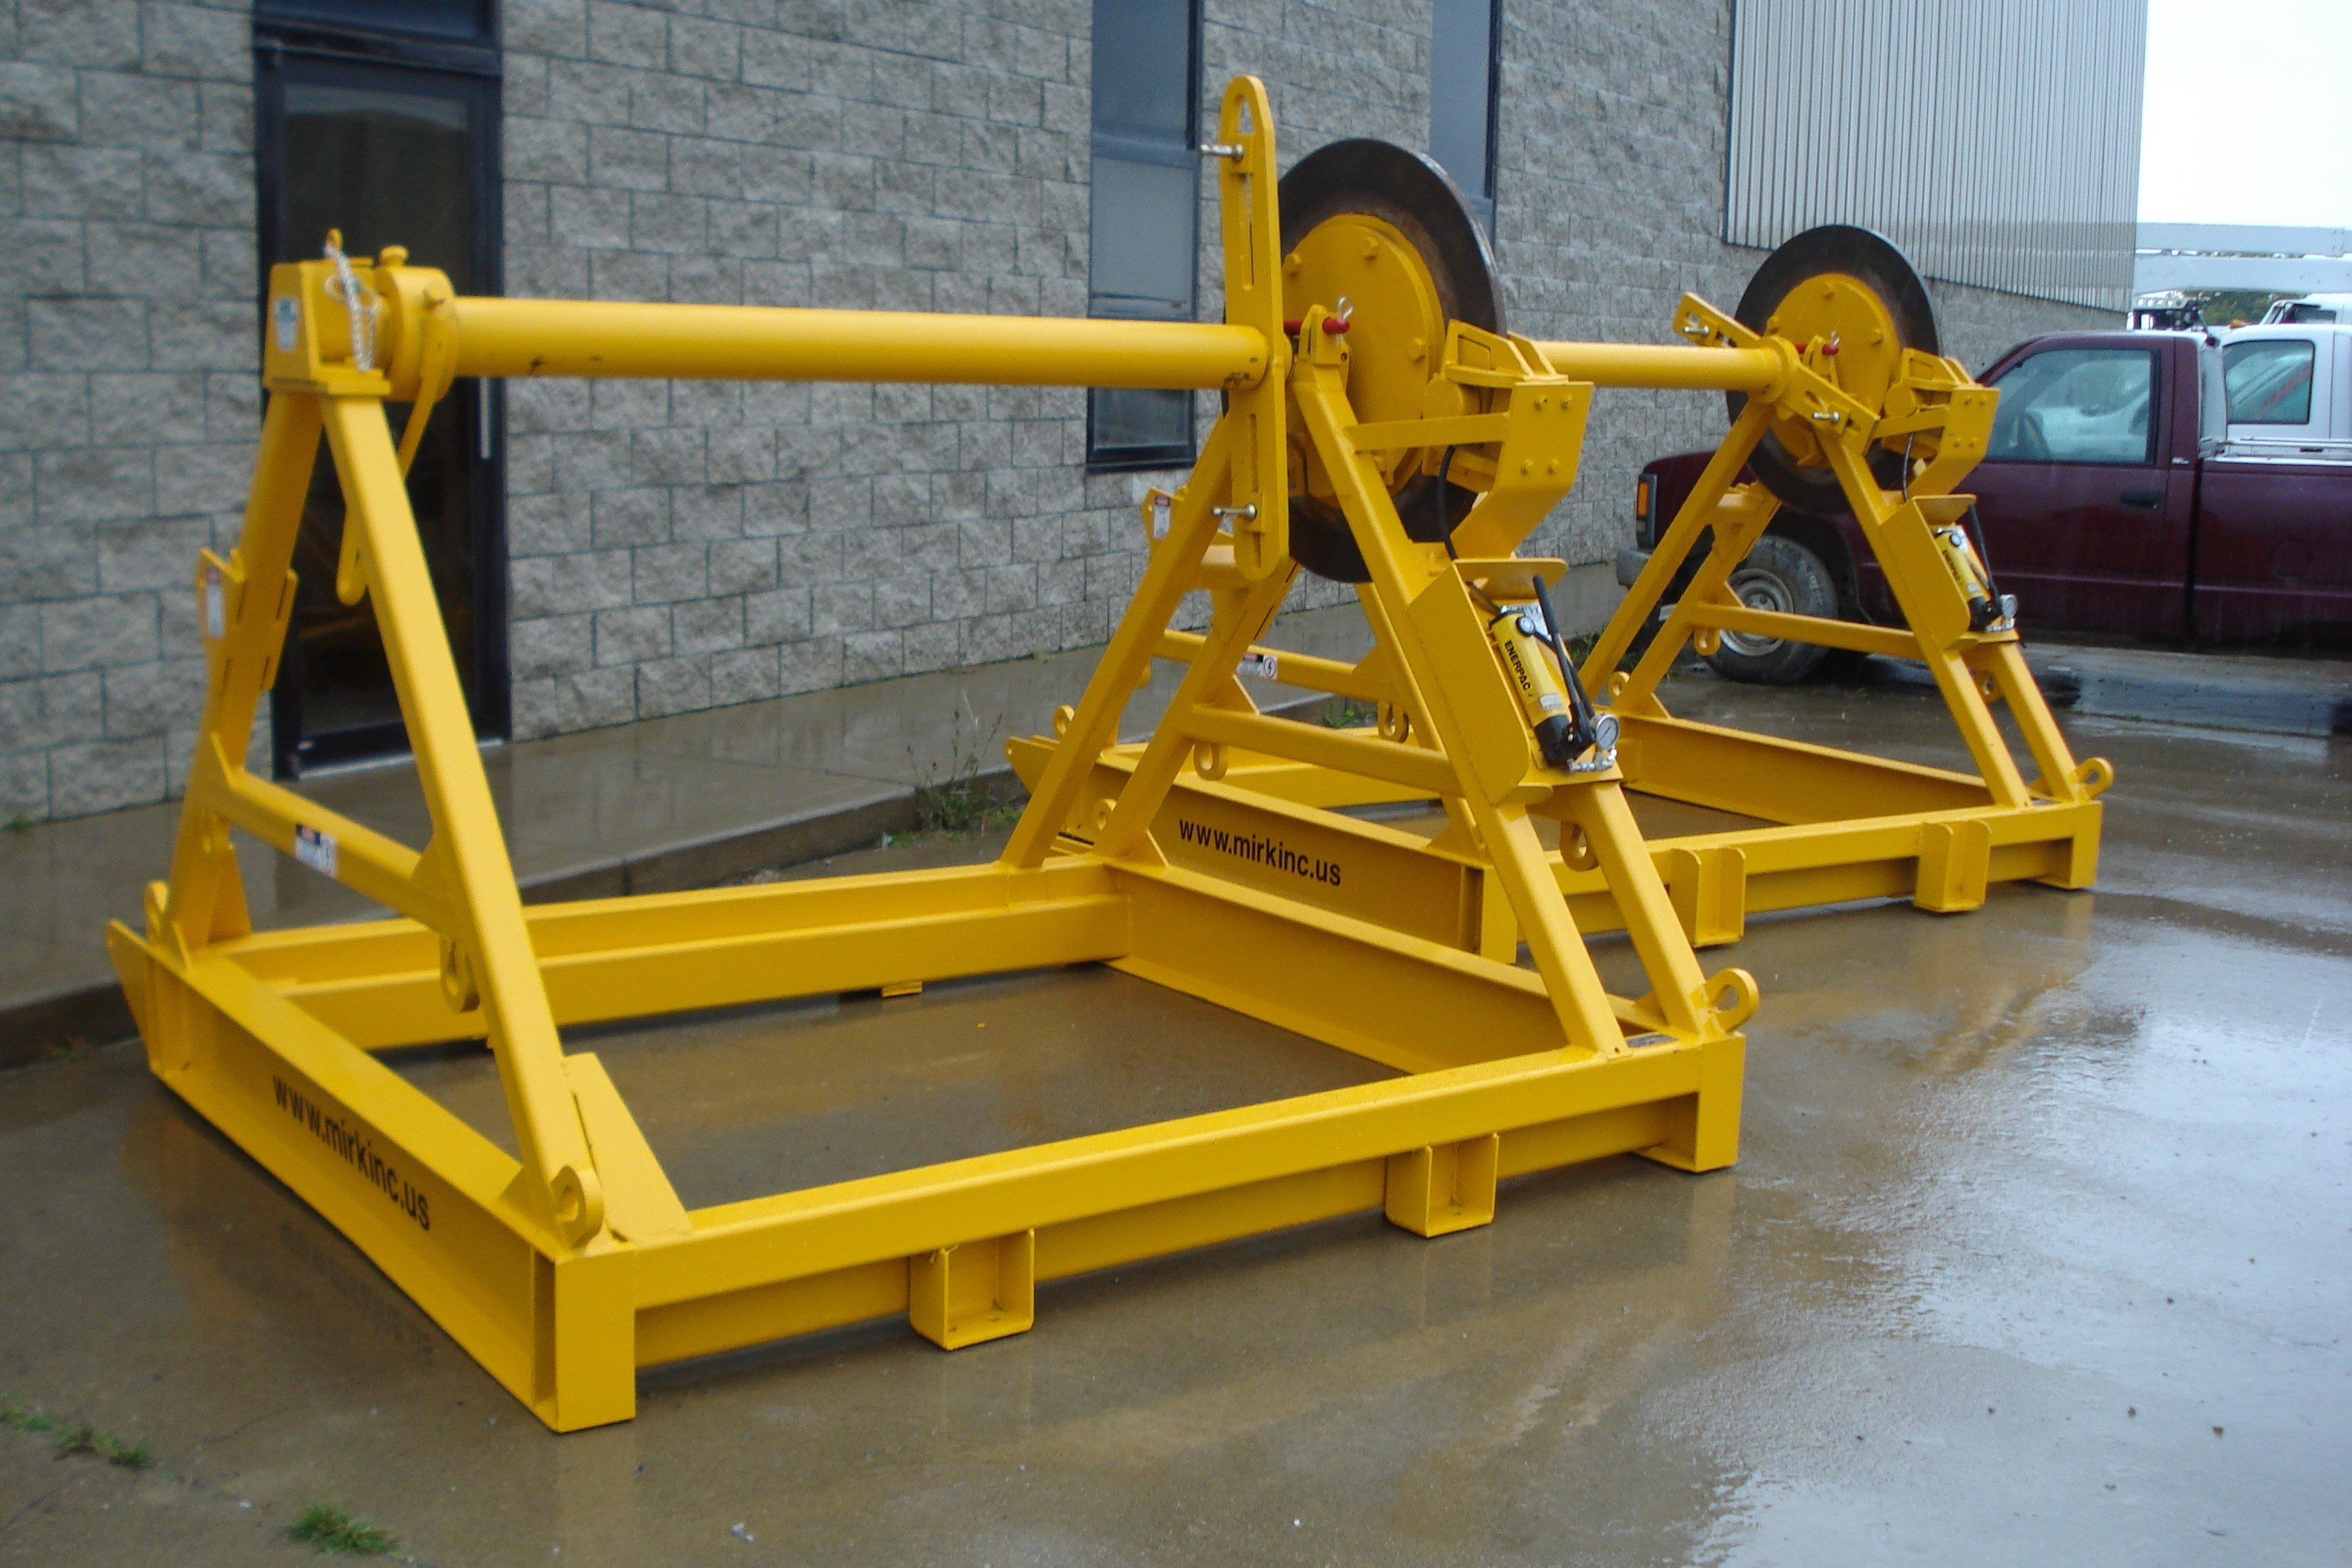 124L (Transmission Reel Stand) - PLREI